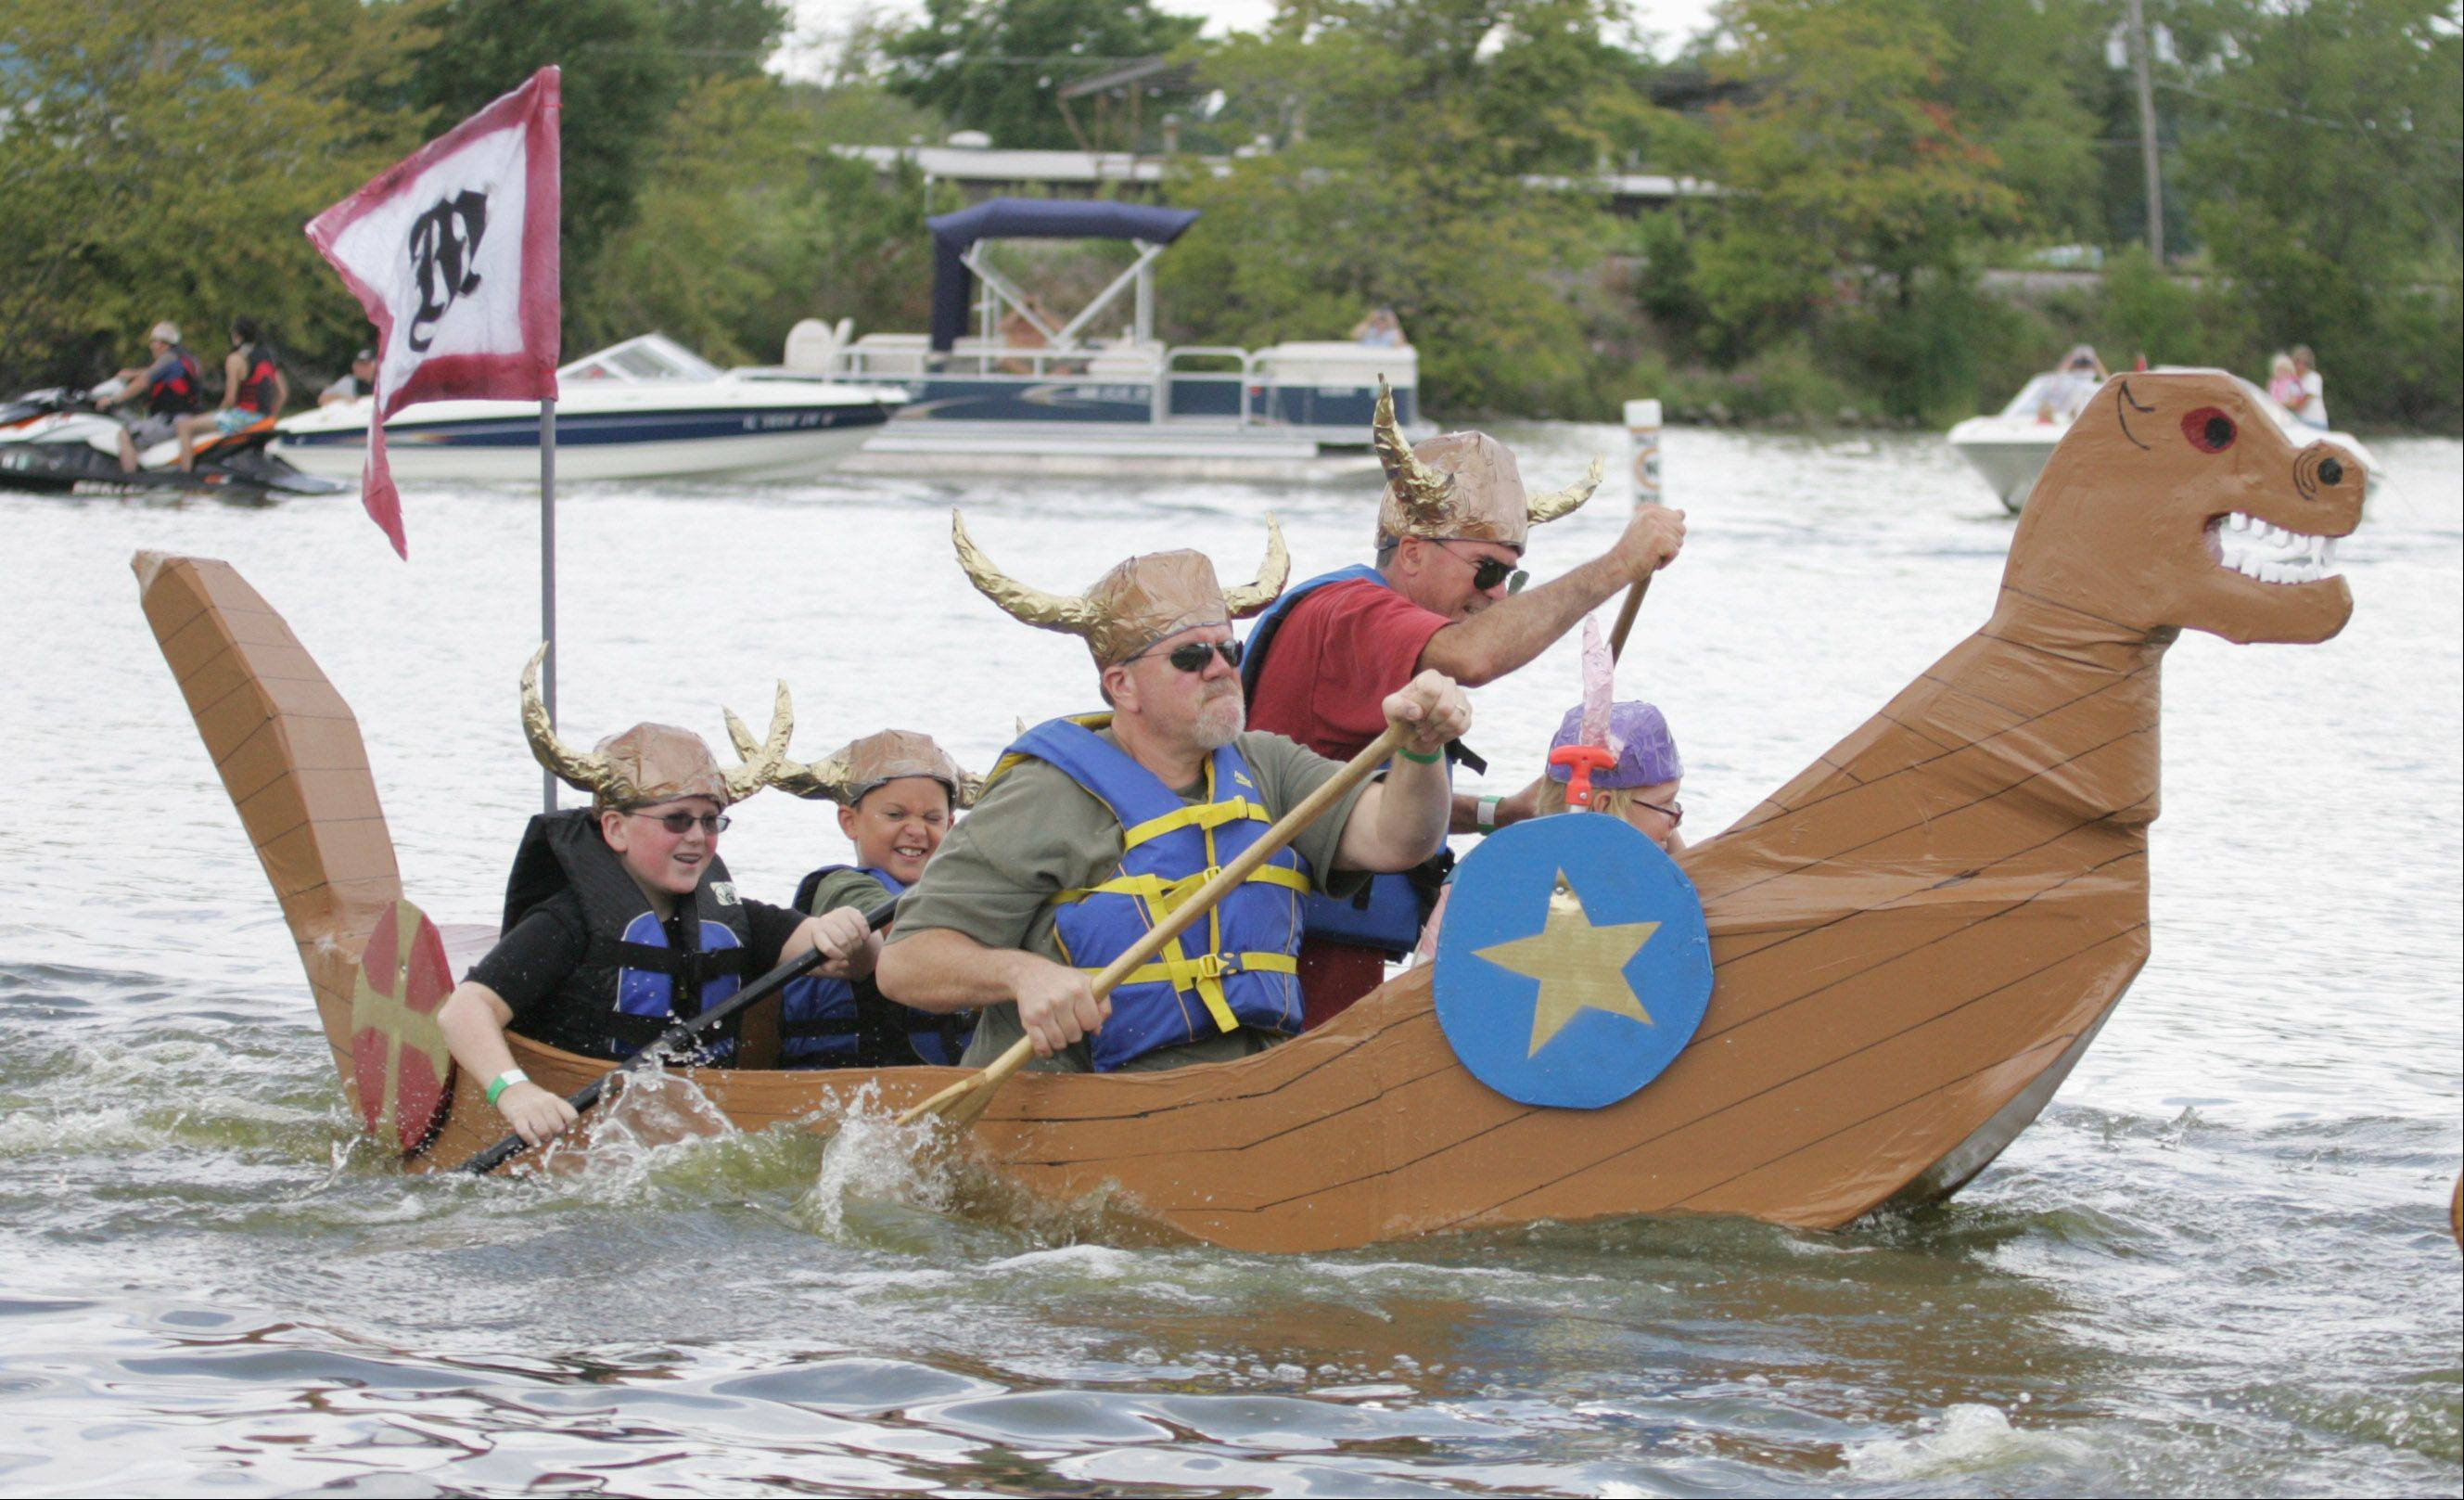 The 16th annual Cardboard Boat Race sponsored by the village of Fox Lake Parks and Recreation Department will begin at 8 a.m. Sunday, Aug. 18, at Lakefront Park, 71 Nippersink Blvd., Fox Lake. Contestants build boats made strictly of cardboard, duct tape and paint and race for awards, including fastest sinking boat.